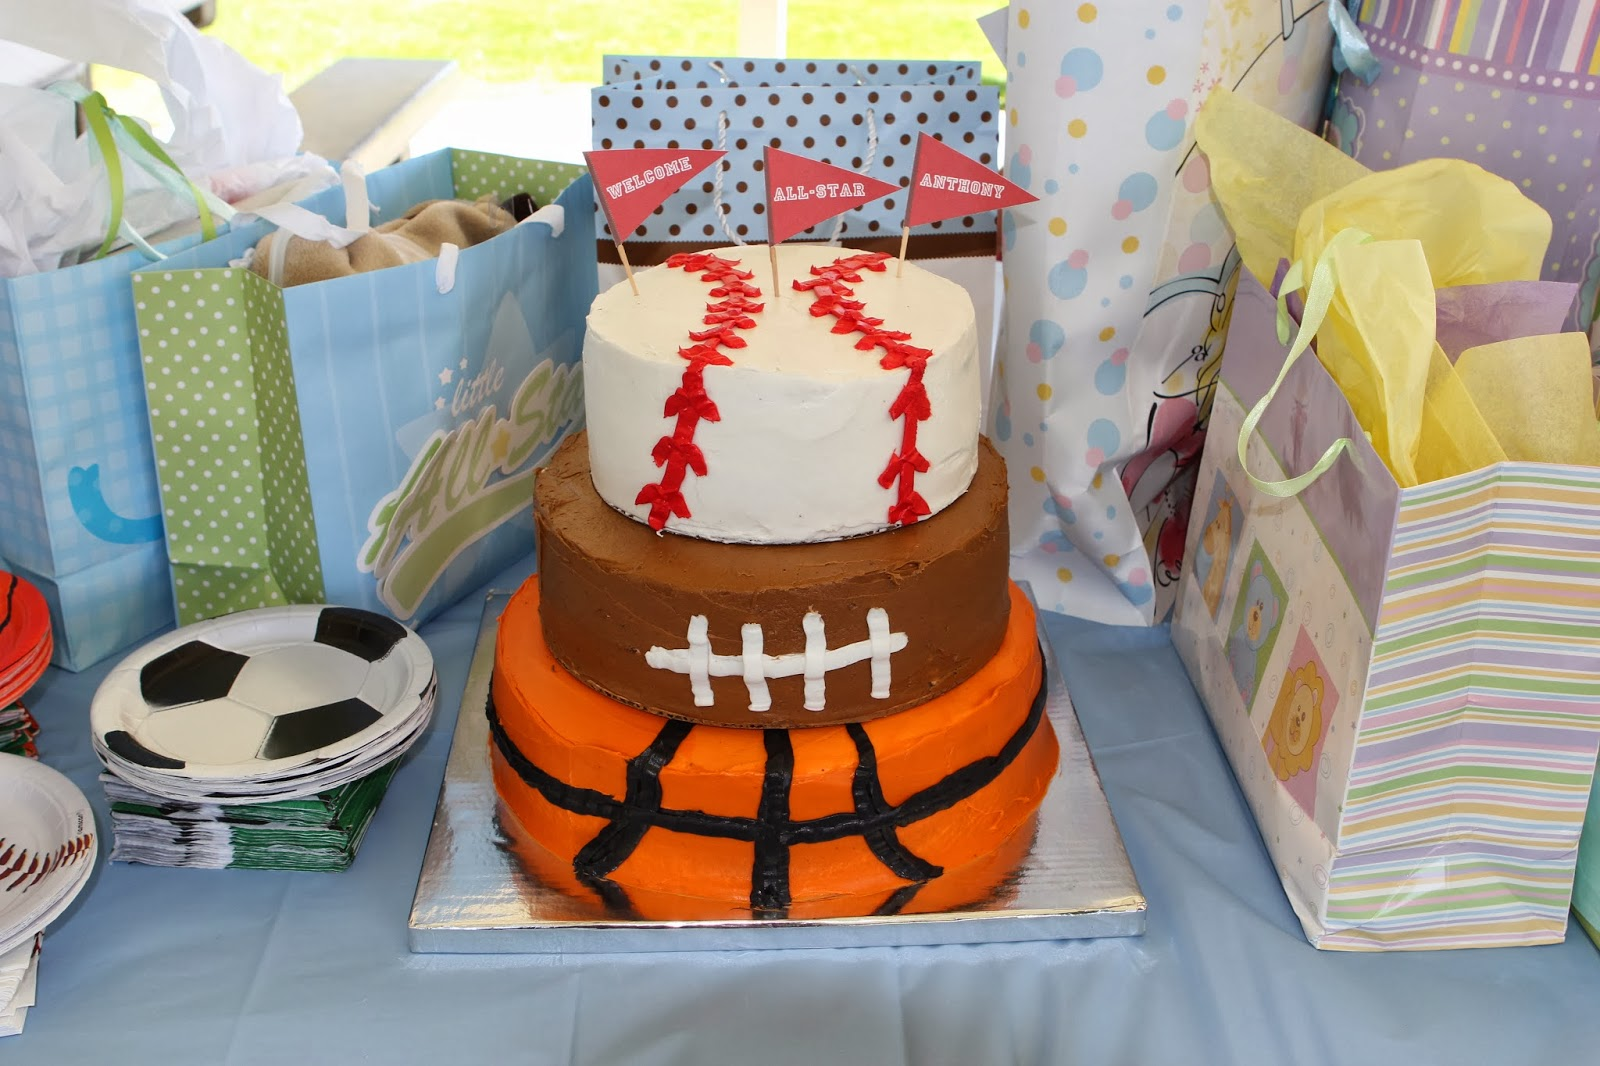 My Friend Was Having A Boy And Wanted A Co Ed Party At The Park. They Are  Both Into Sports So It Was A Perfect Fit To Do A Sports Themed Baby Shower.